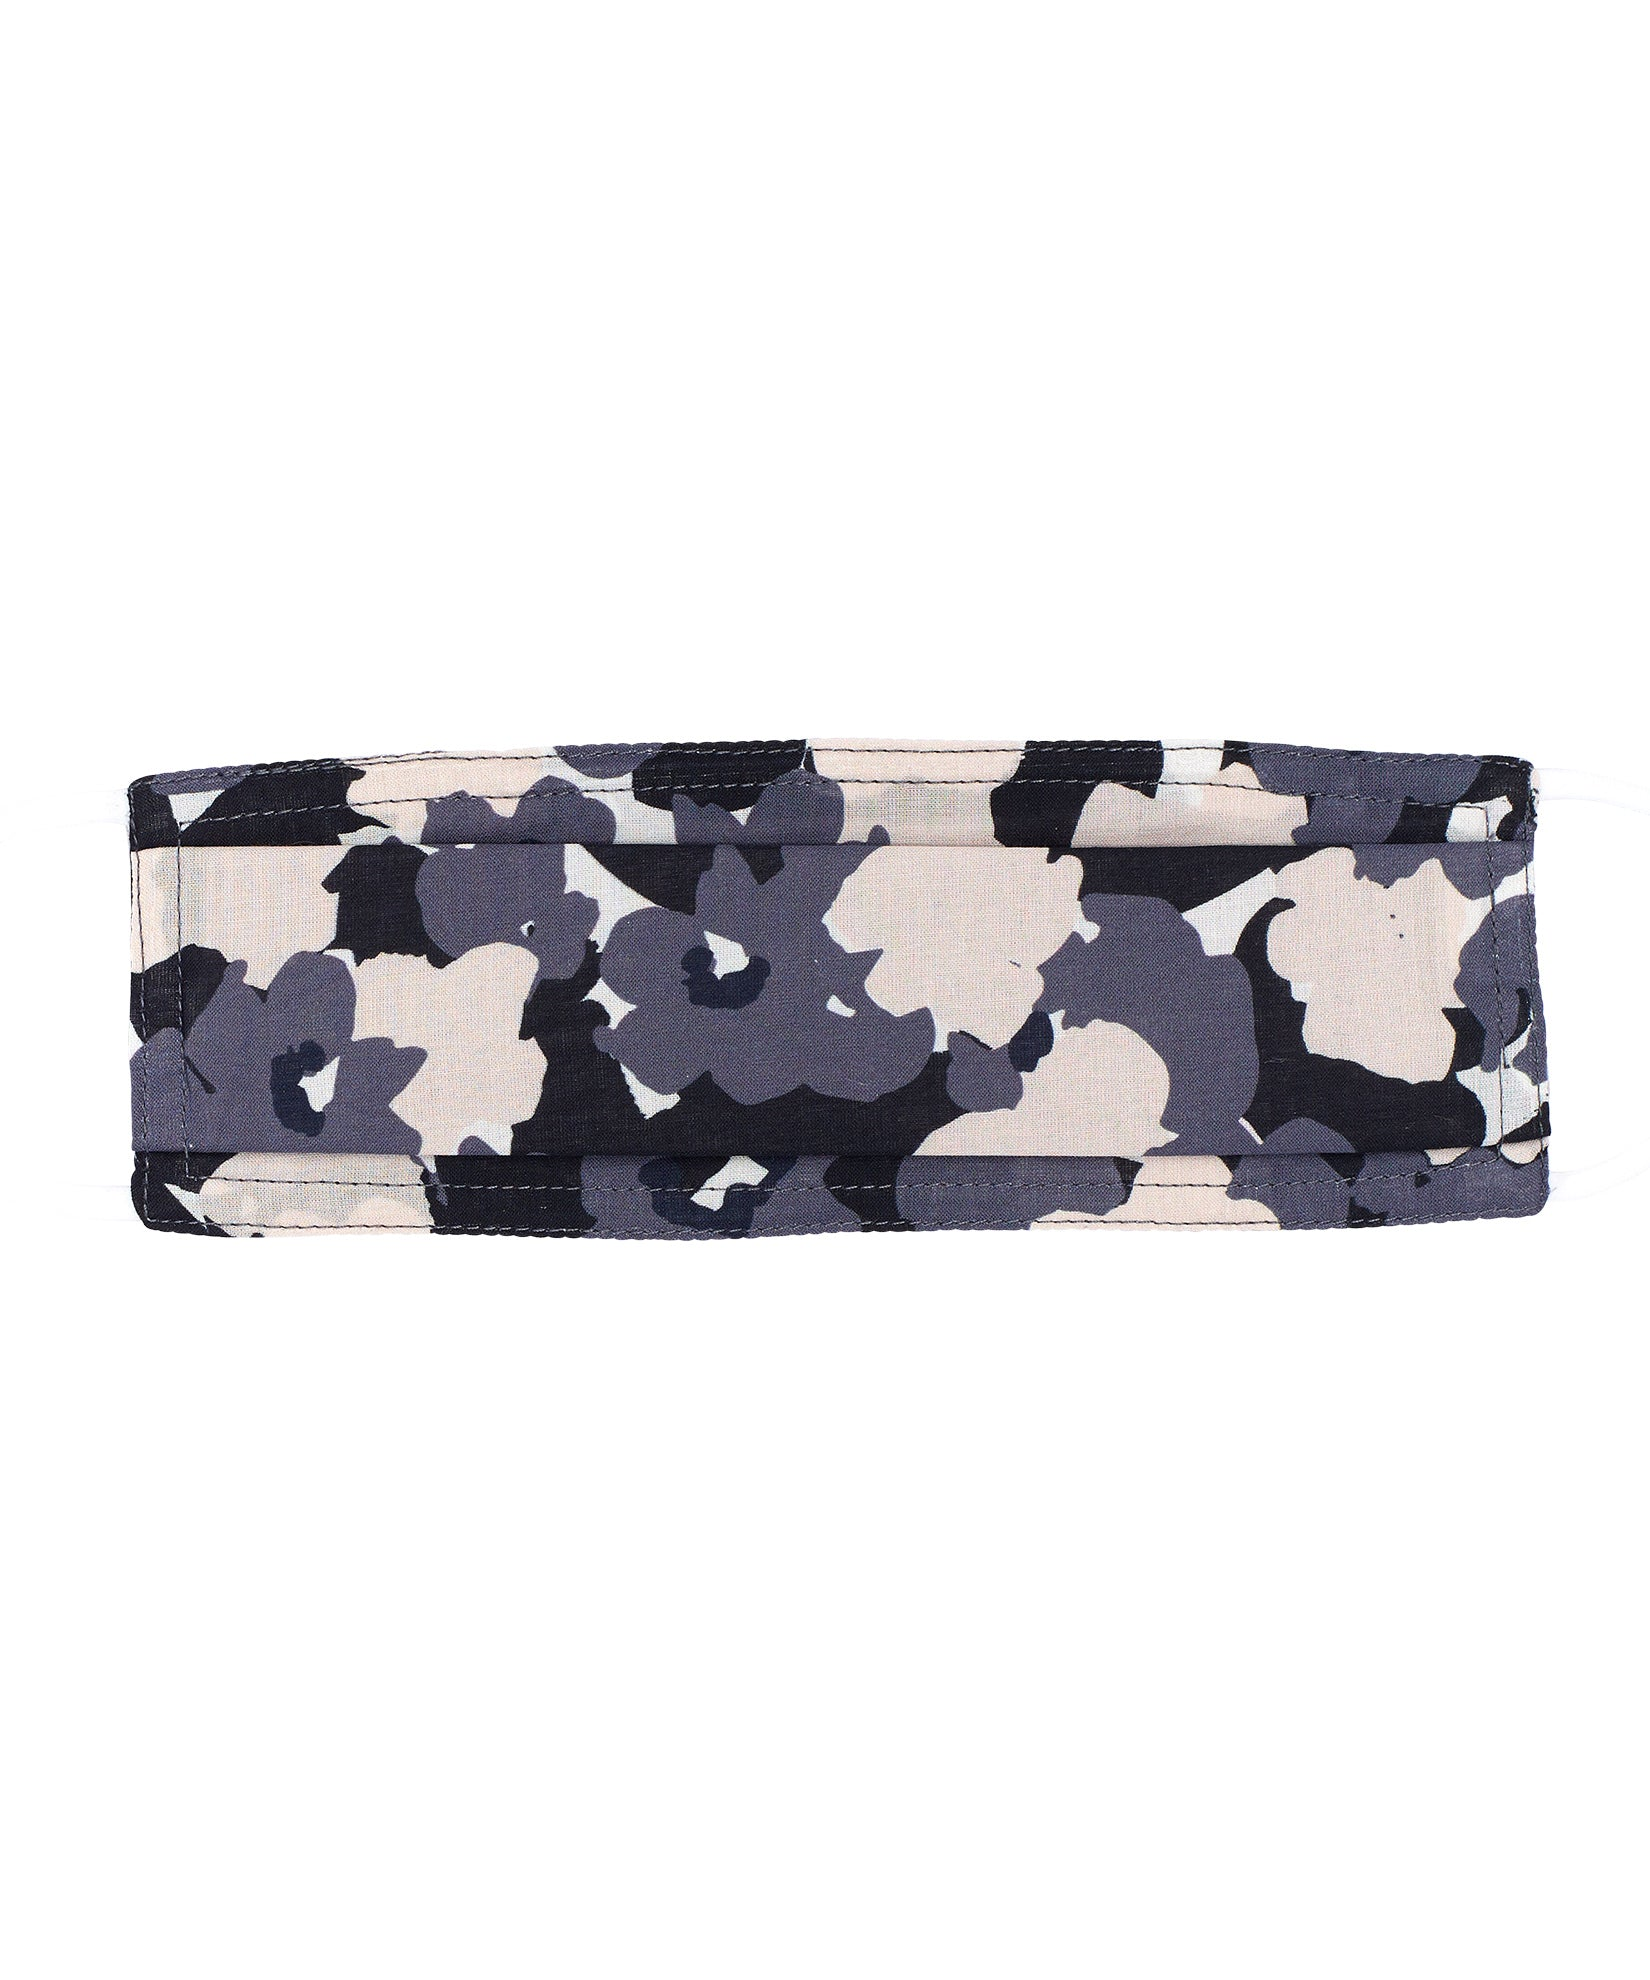 Black - Floral Camo Cooling Mask w/Pocket